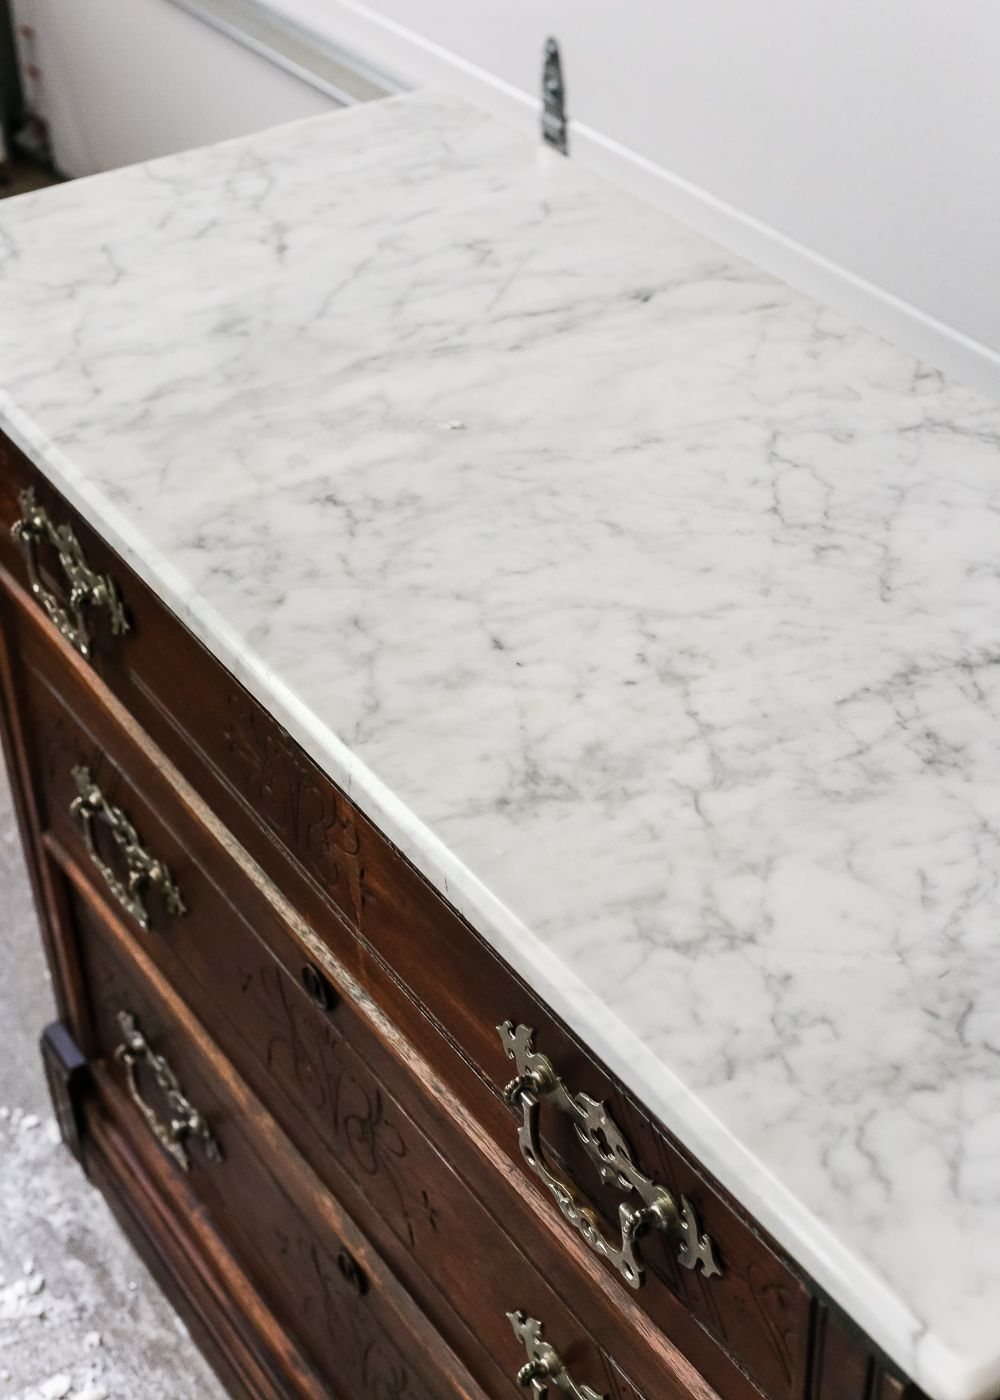 How To Remove Stains From Marble Foyer Chest Makeover Cleaning Painted Walls Deep Cleaning Tips Clean Dishwasher